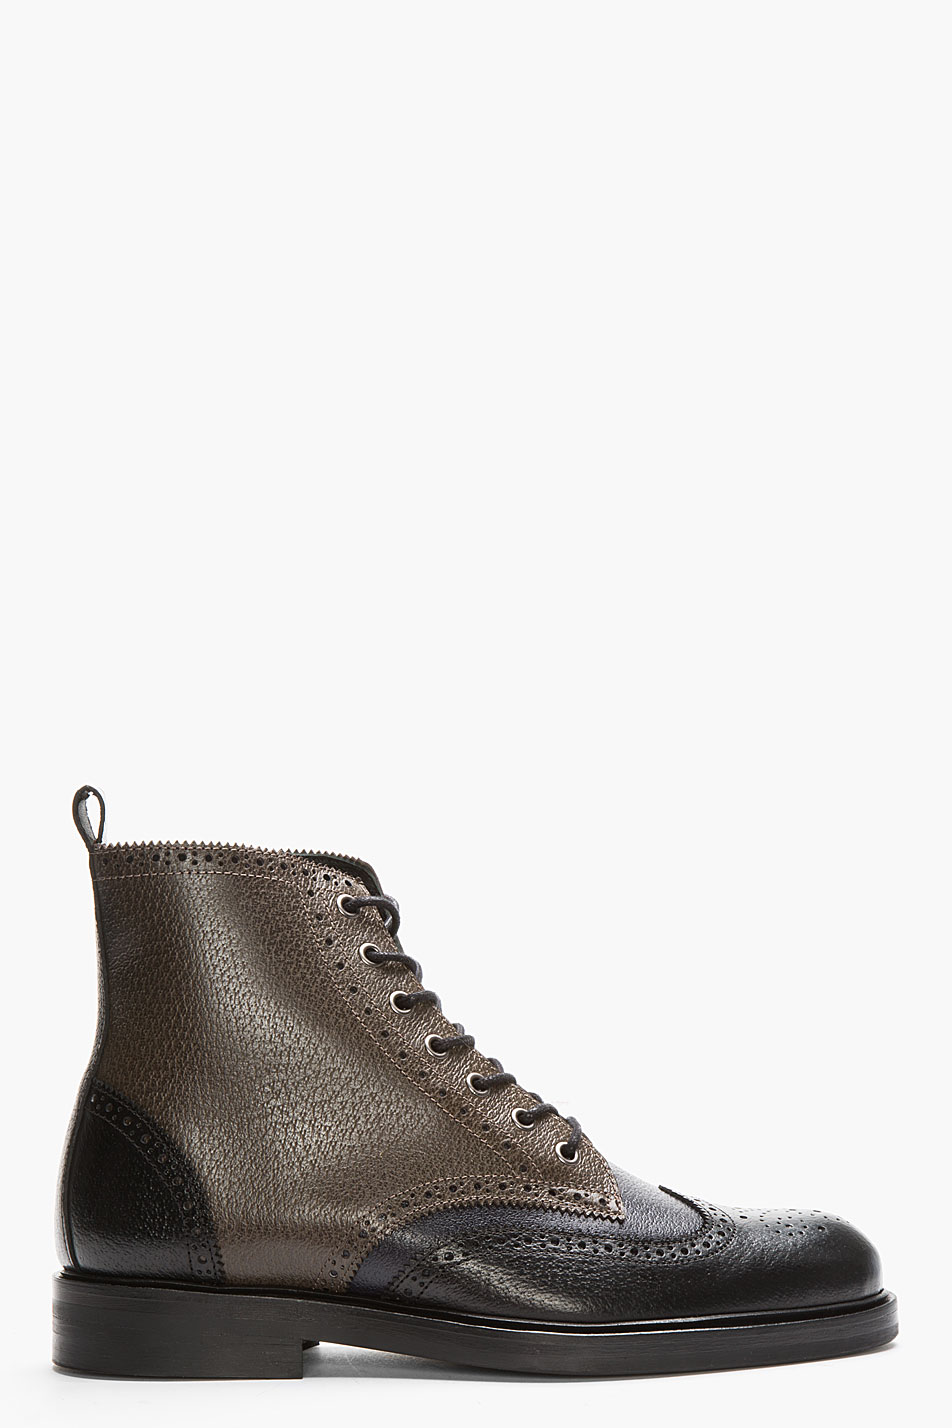 hardy black tricolor leather wingtip brogue boots